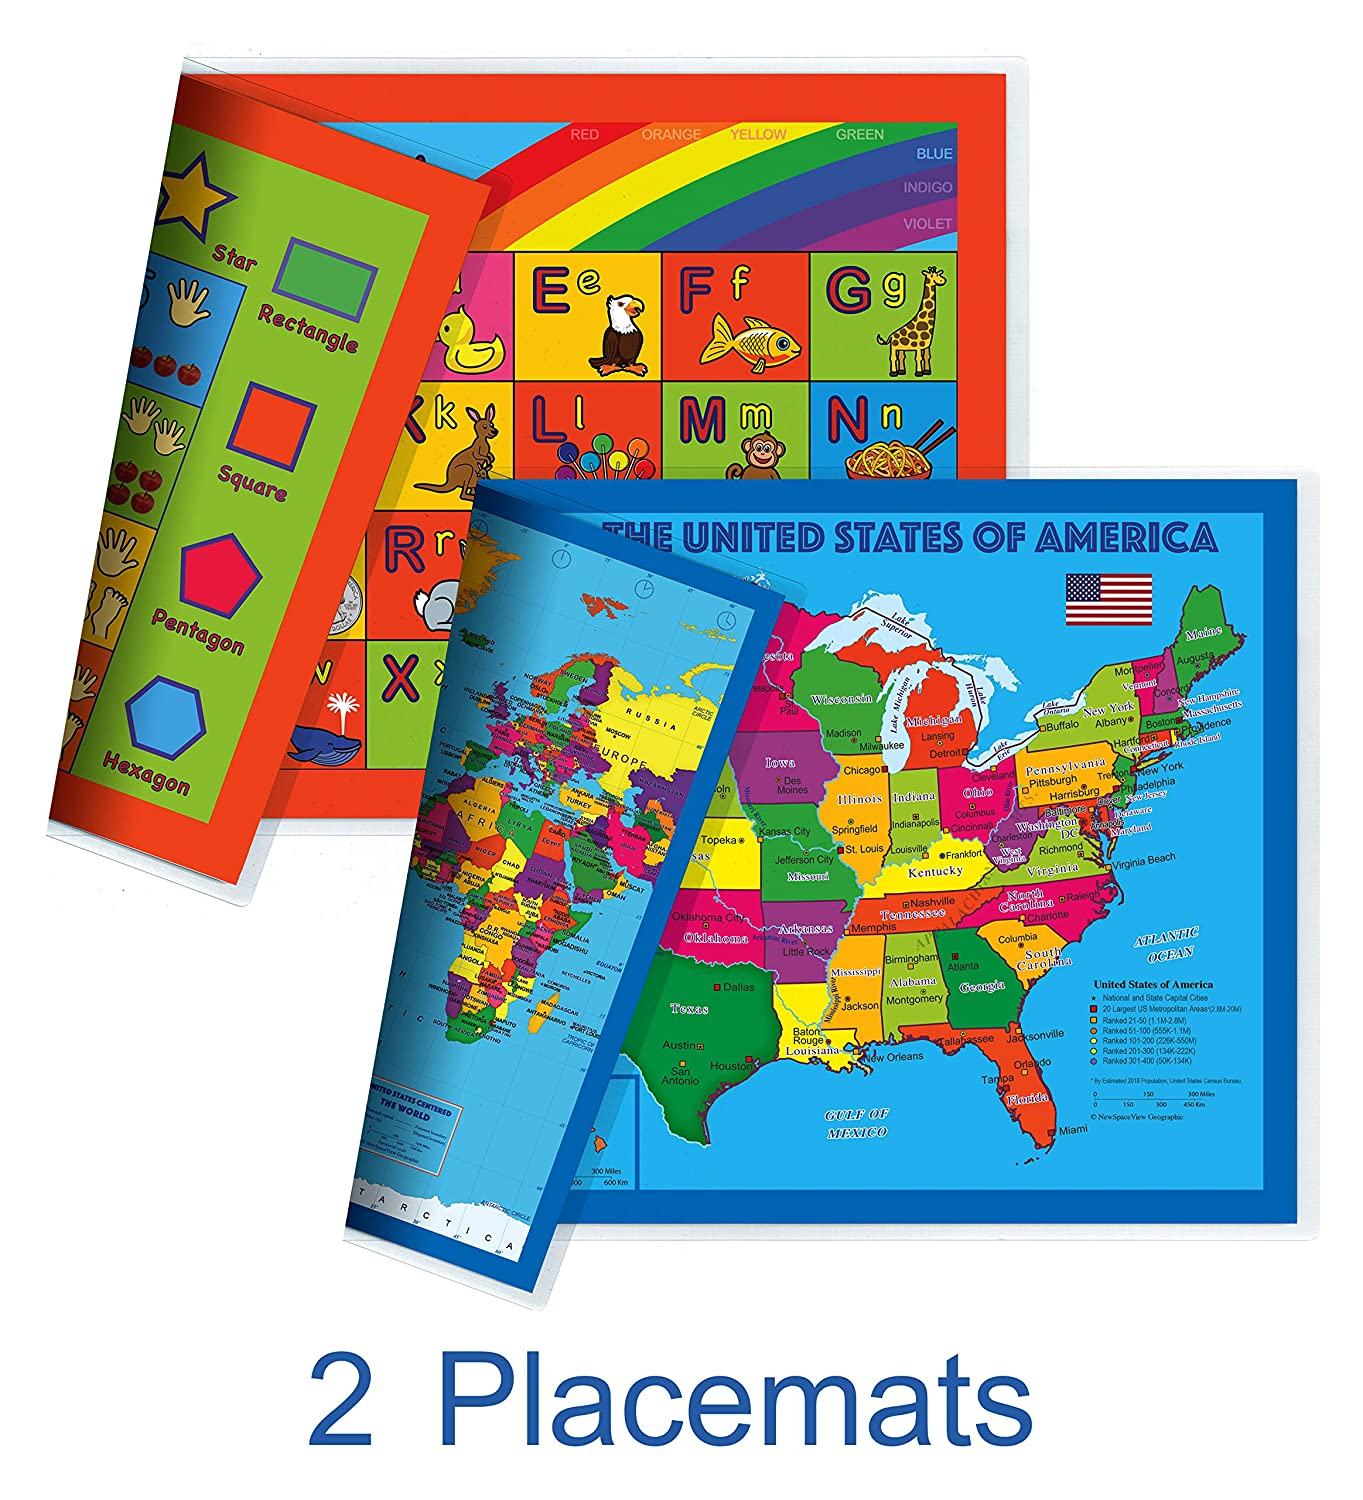 NewSpaceView Natural Learning Childrens Placemat Alphabet, Numbers, Shapes, Colors 4-in-1 1 Pack